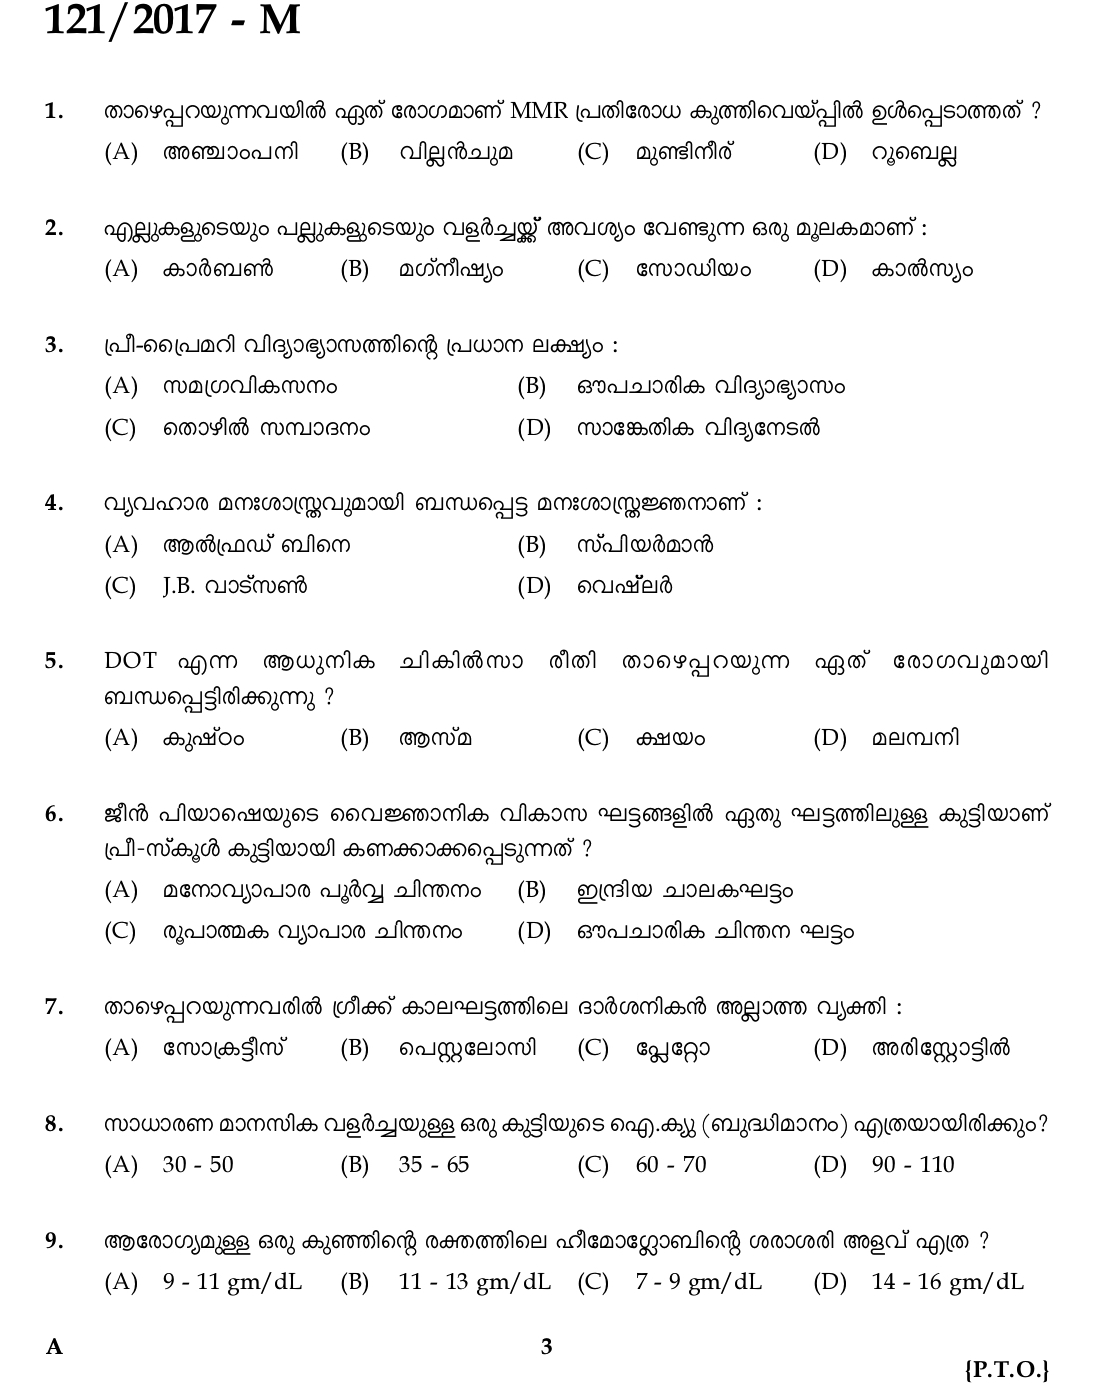 Pre Primary Teacher Question Paper with Answer Key 121/2017 - Kerala PSC